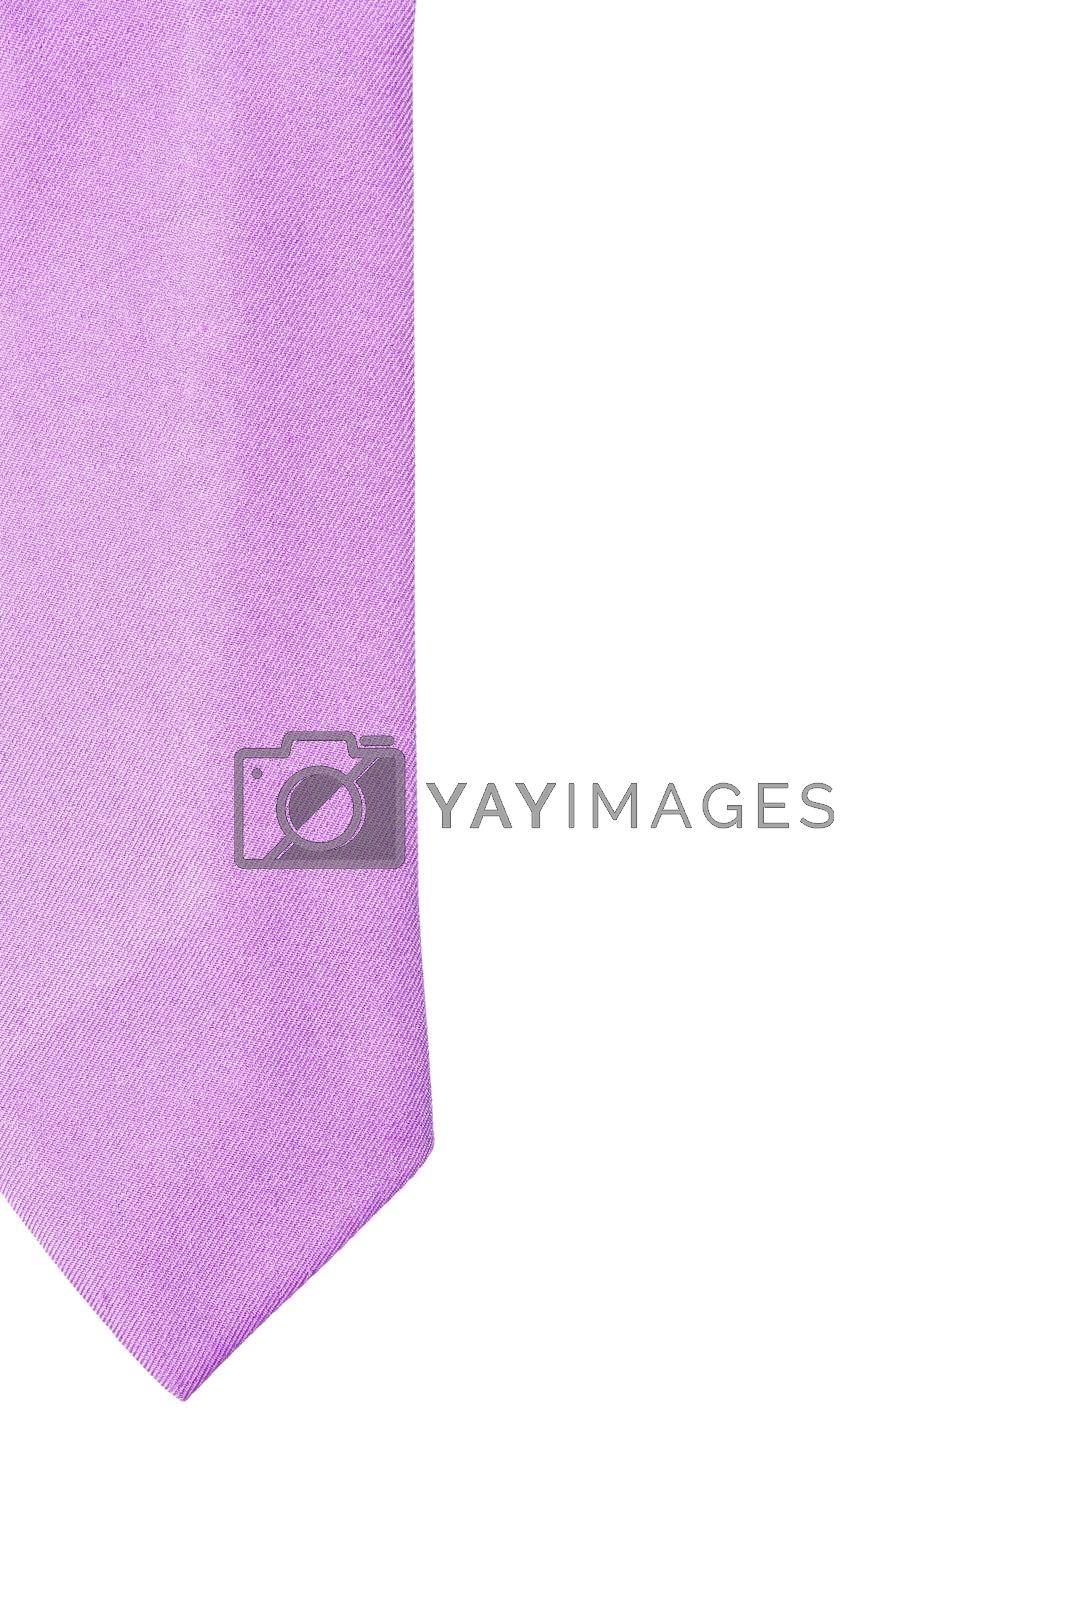 plain purple business neck tie isolated on white background